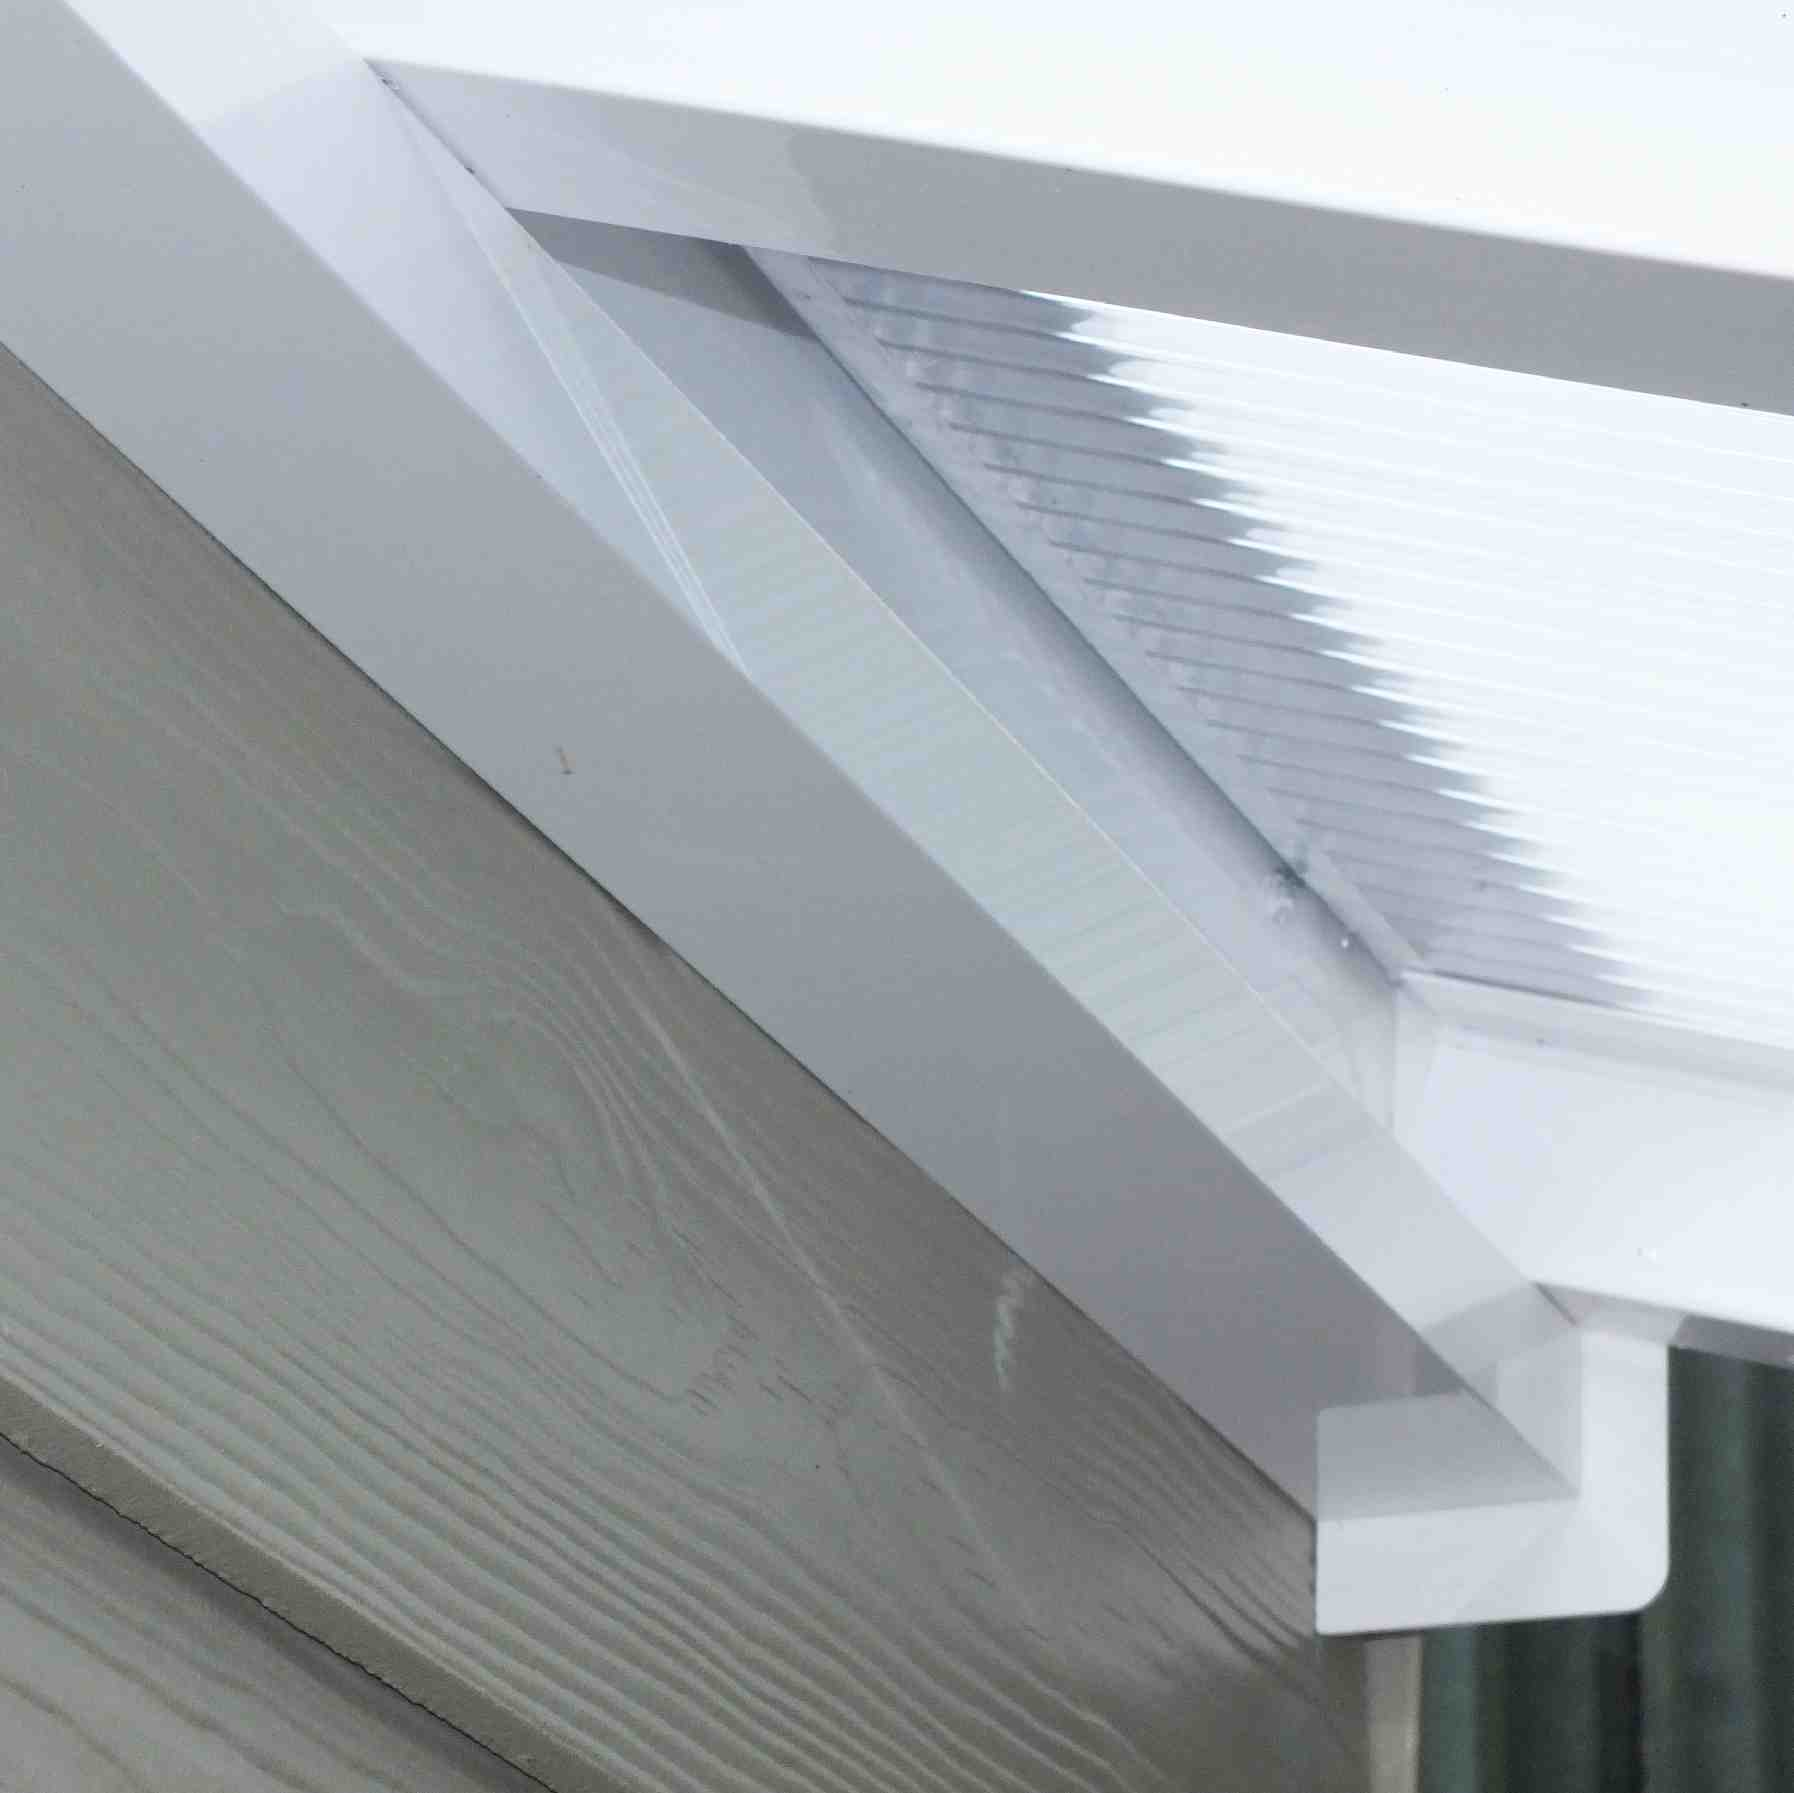 Great deals on Omega Verandah with 16mm Polycarbonate Glazing - 11.2m (W) x 4.5m (P), (5) Supporting Posts